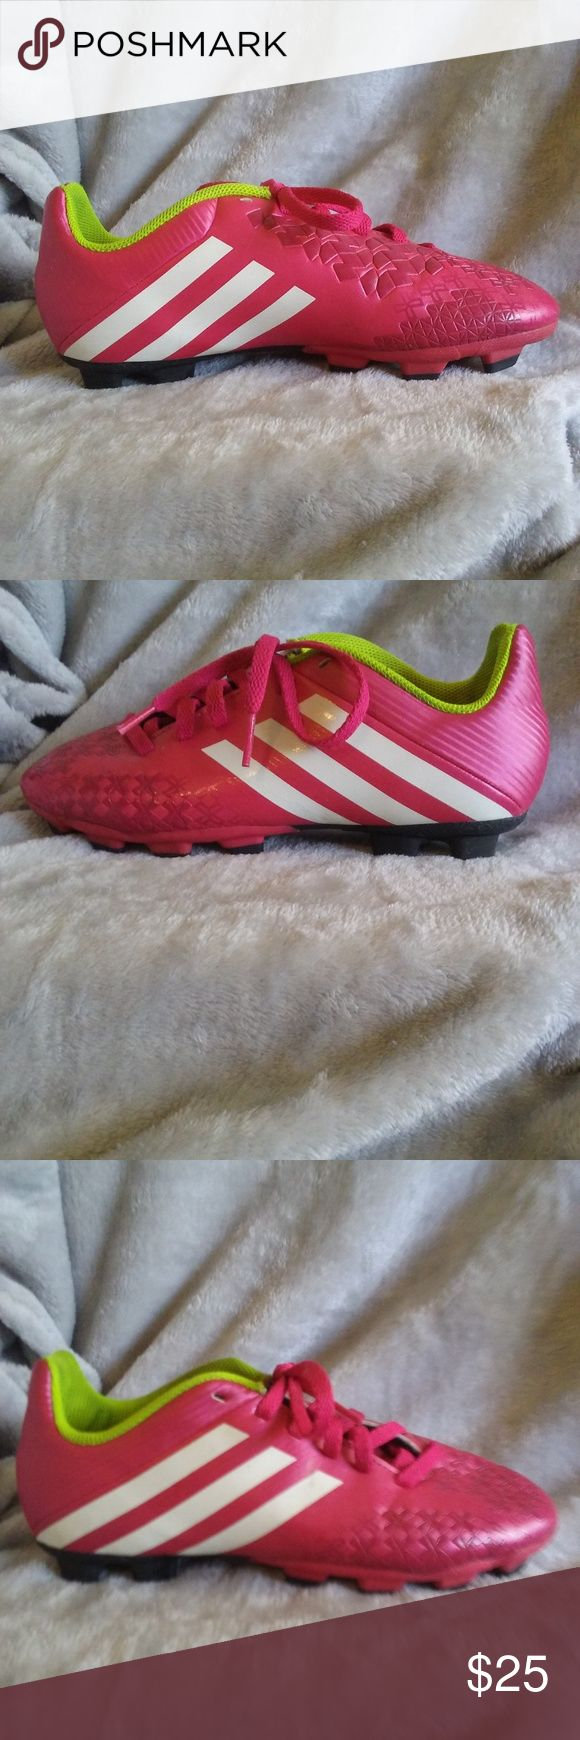 Adidas Boys Youth Pink Soccer Cleats Size 3 Nice pair of pink with white stripes boys or girls Adidas soccer cleats size 3. adidas Shoes